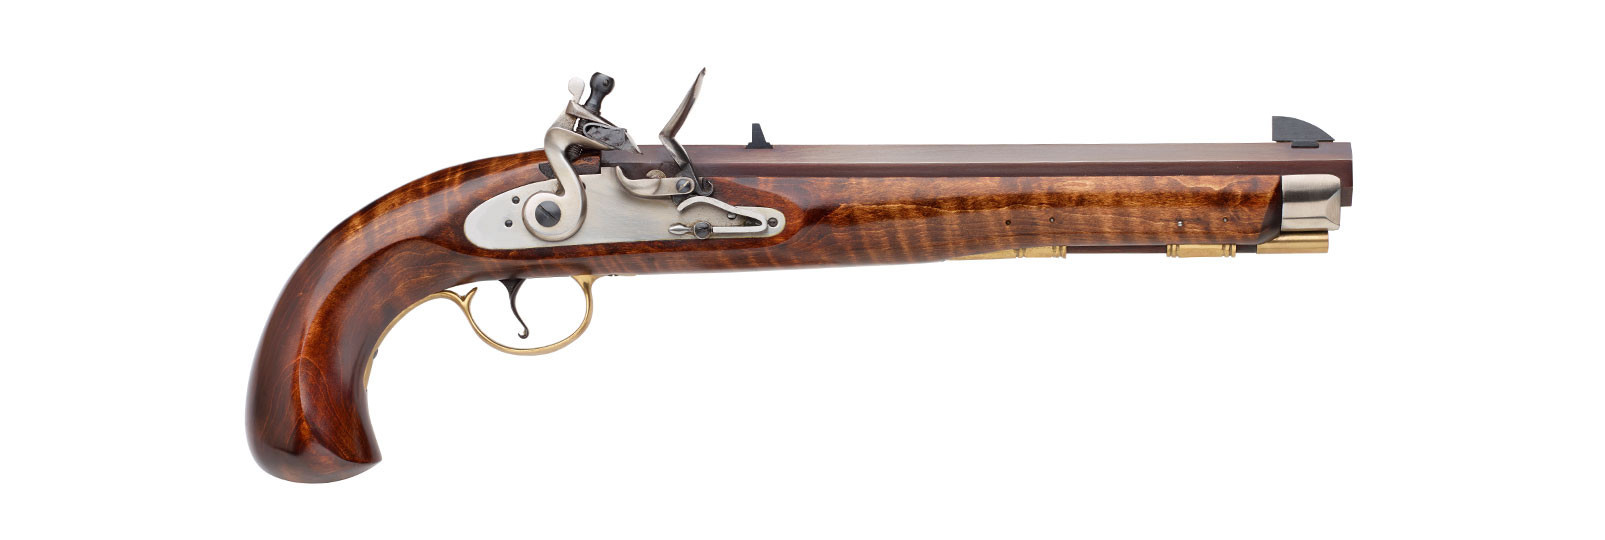 "Kentucky ""Maple"" Pistol flintlock model"